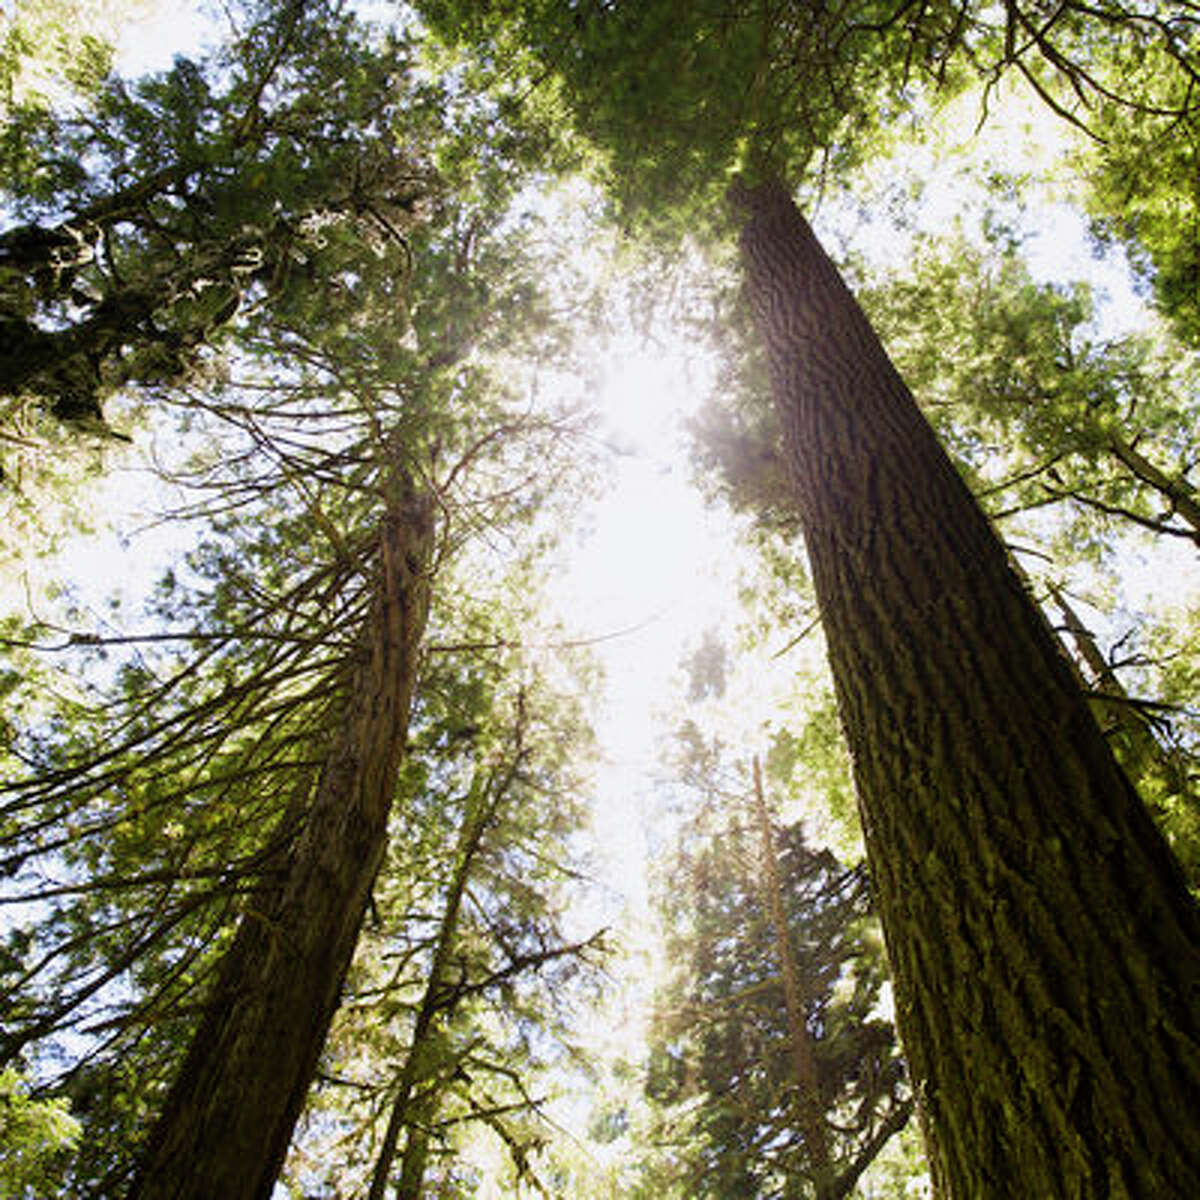 Impacts of air pollution at California National Parks Redwood National Park Visibility: Moderate concern Health: Moderate concern Nature: Significant concern Climate: Moderate concern